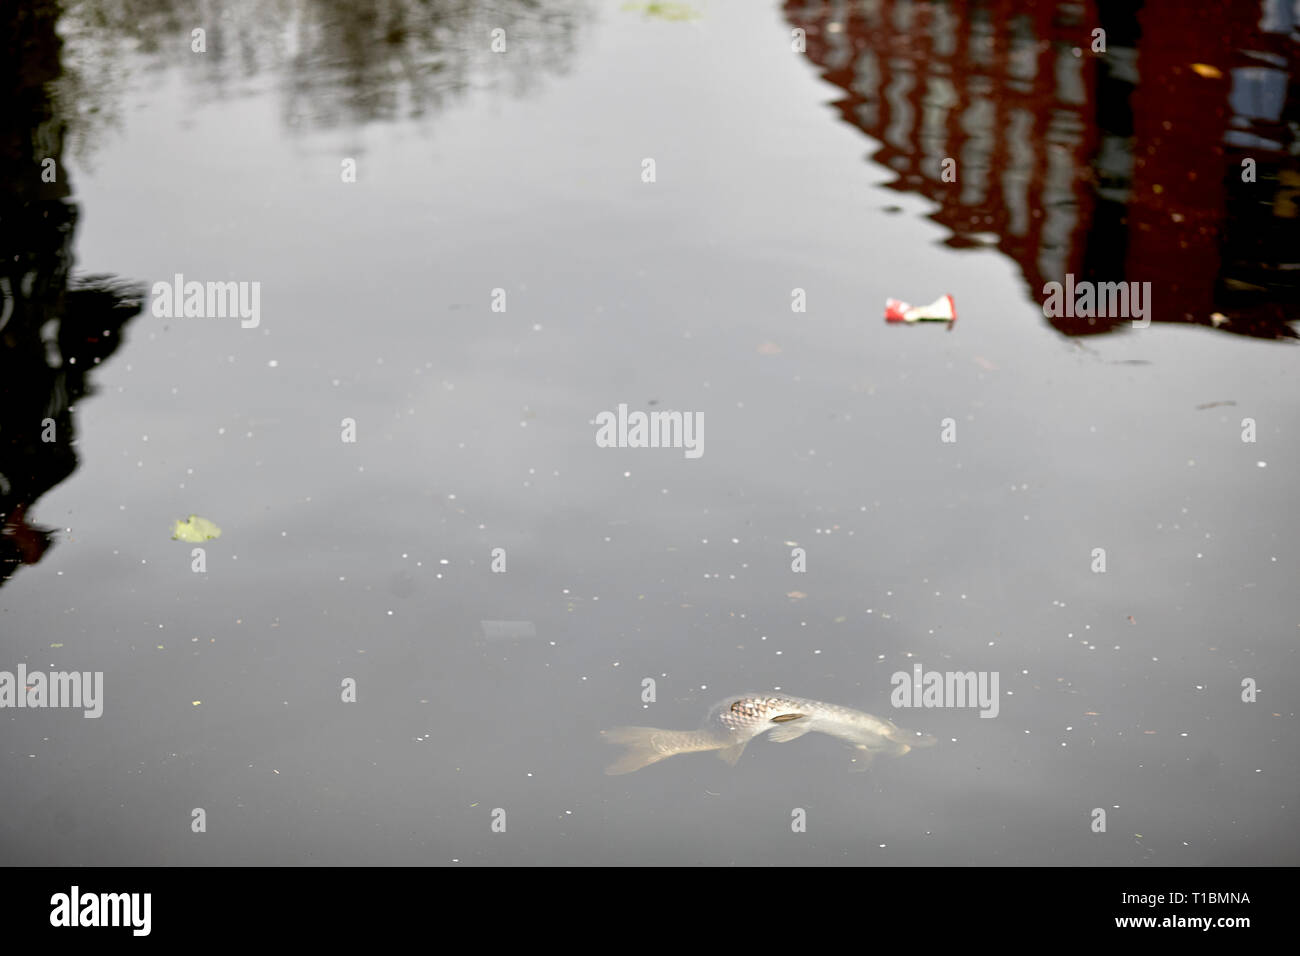 Dead fish at hackney wick canal, pollution - Stock Image